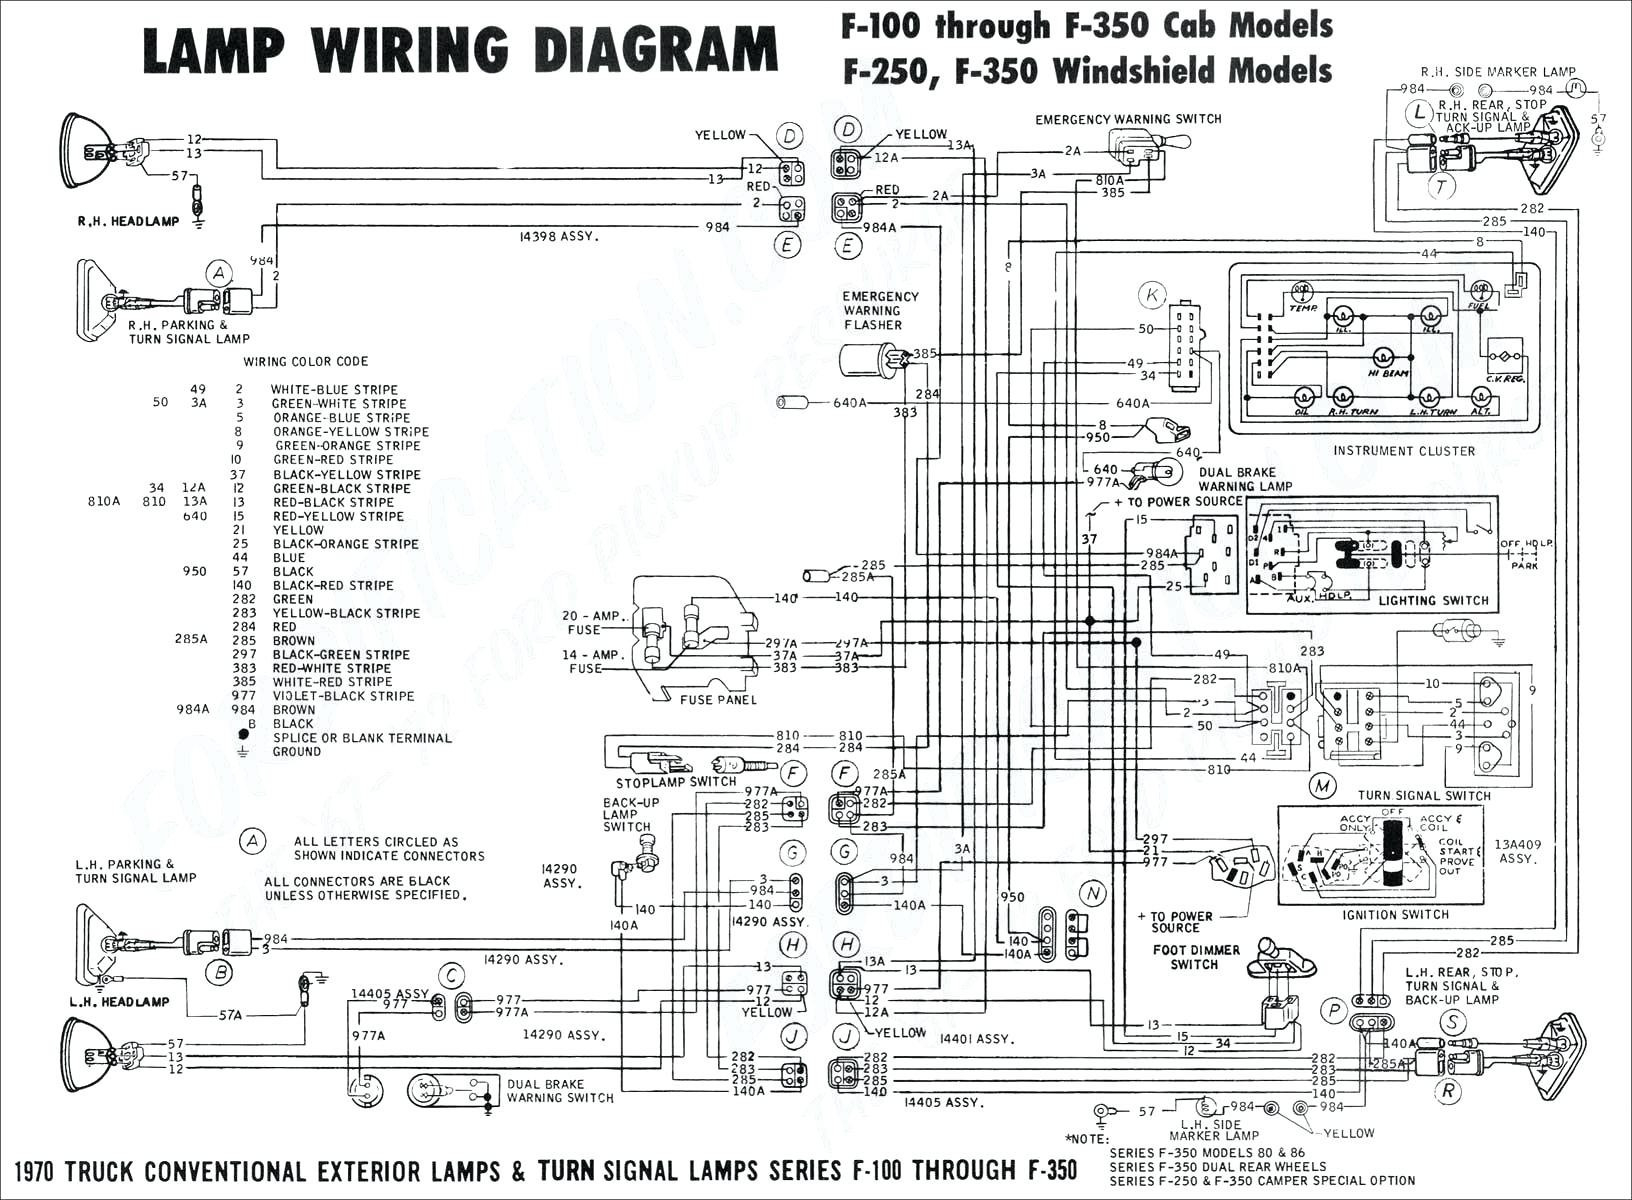 1994 e350 wiring diagram online circuit wiring diagram u2022 rh electrobuddha co uk 1994 ford e350 alternator wiring diagram